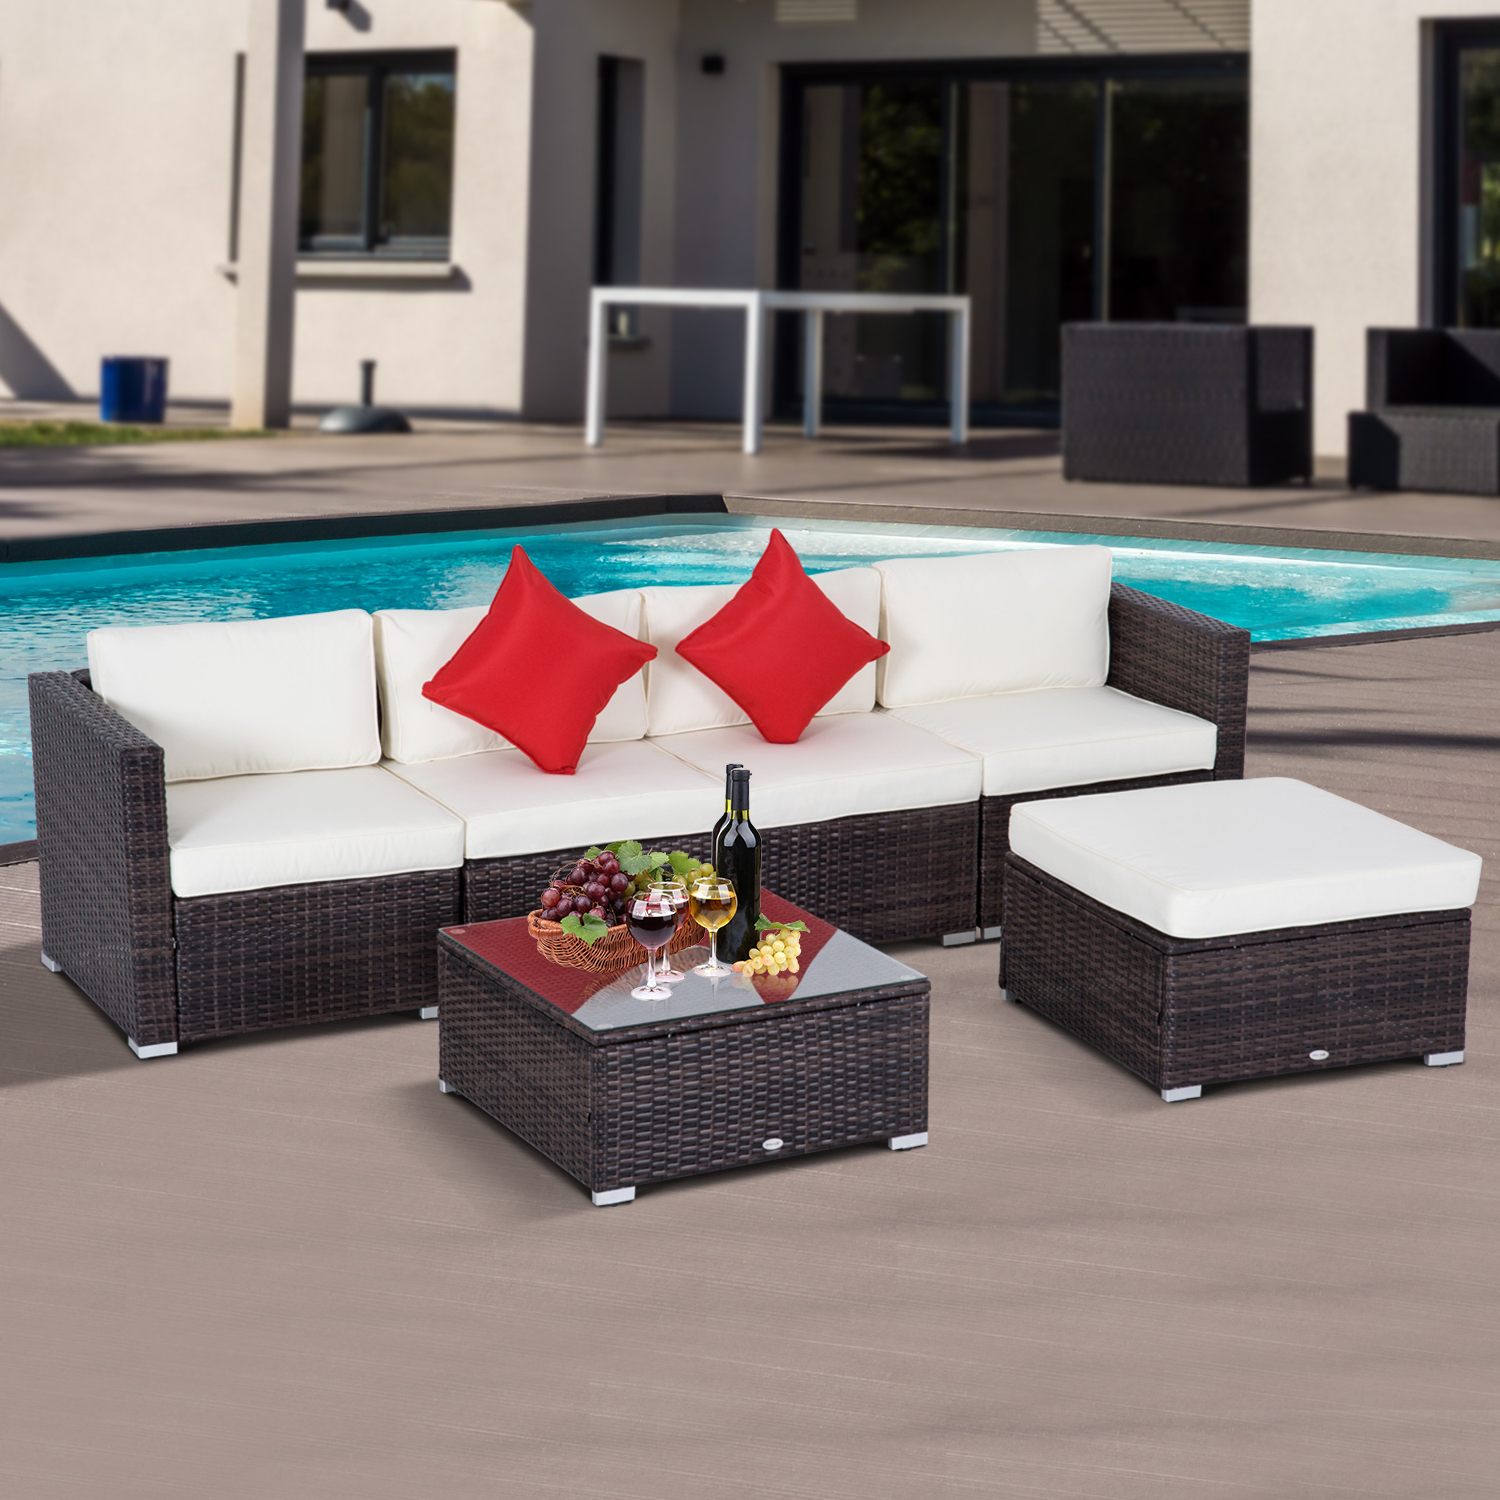 O'kean Teak Patio Sofas With Cushions Within Current Details About Outsunny 6pc Rattan Wicker Patio Sofa Set Sectional Garden Yard Couch Furniture (View 17 of 25)